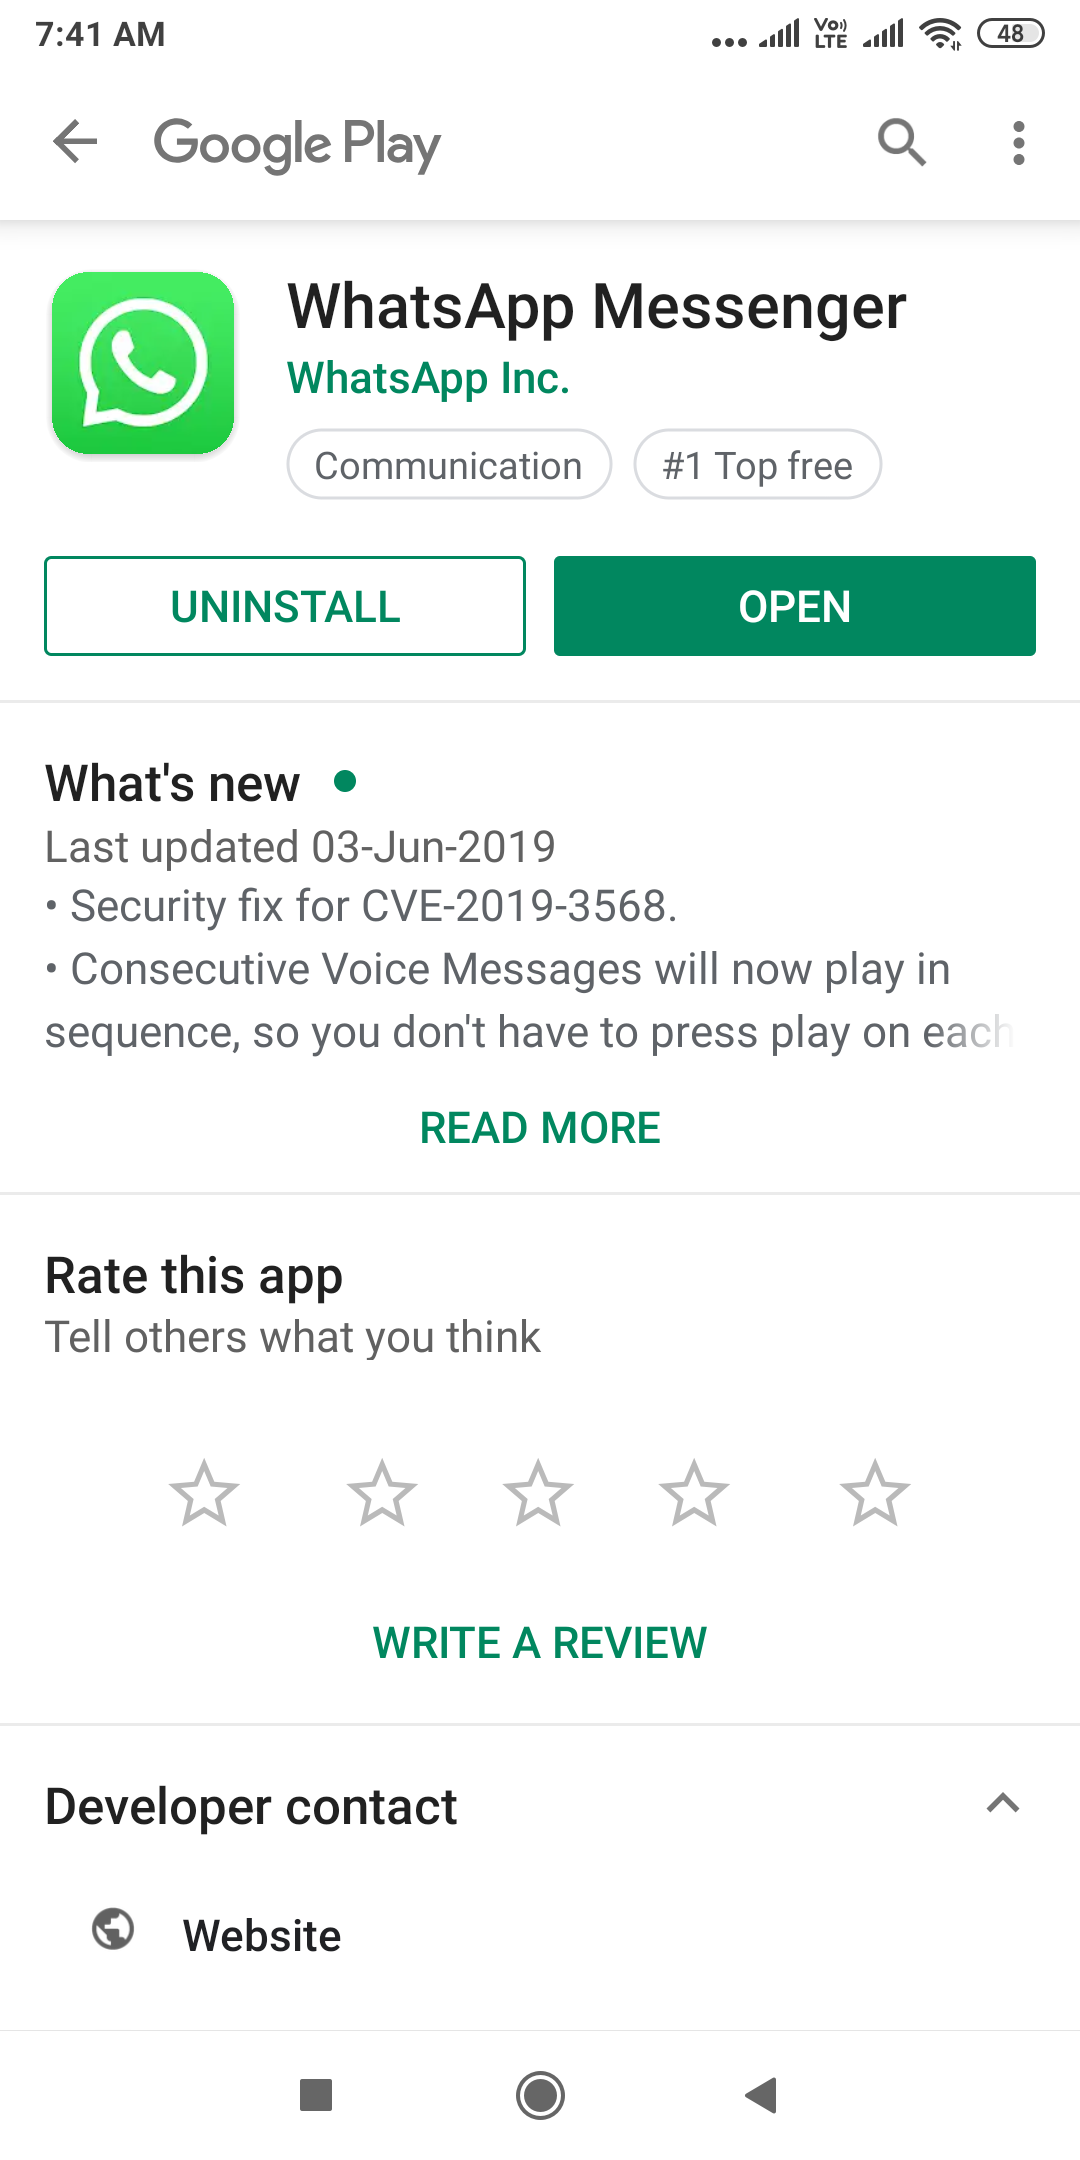 Open Specific App in Google Play Store from App in Android